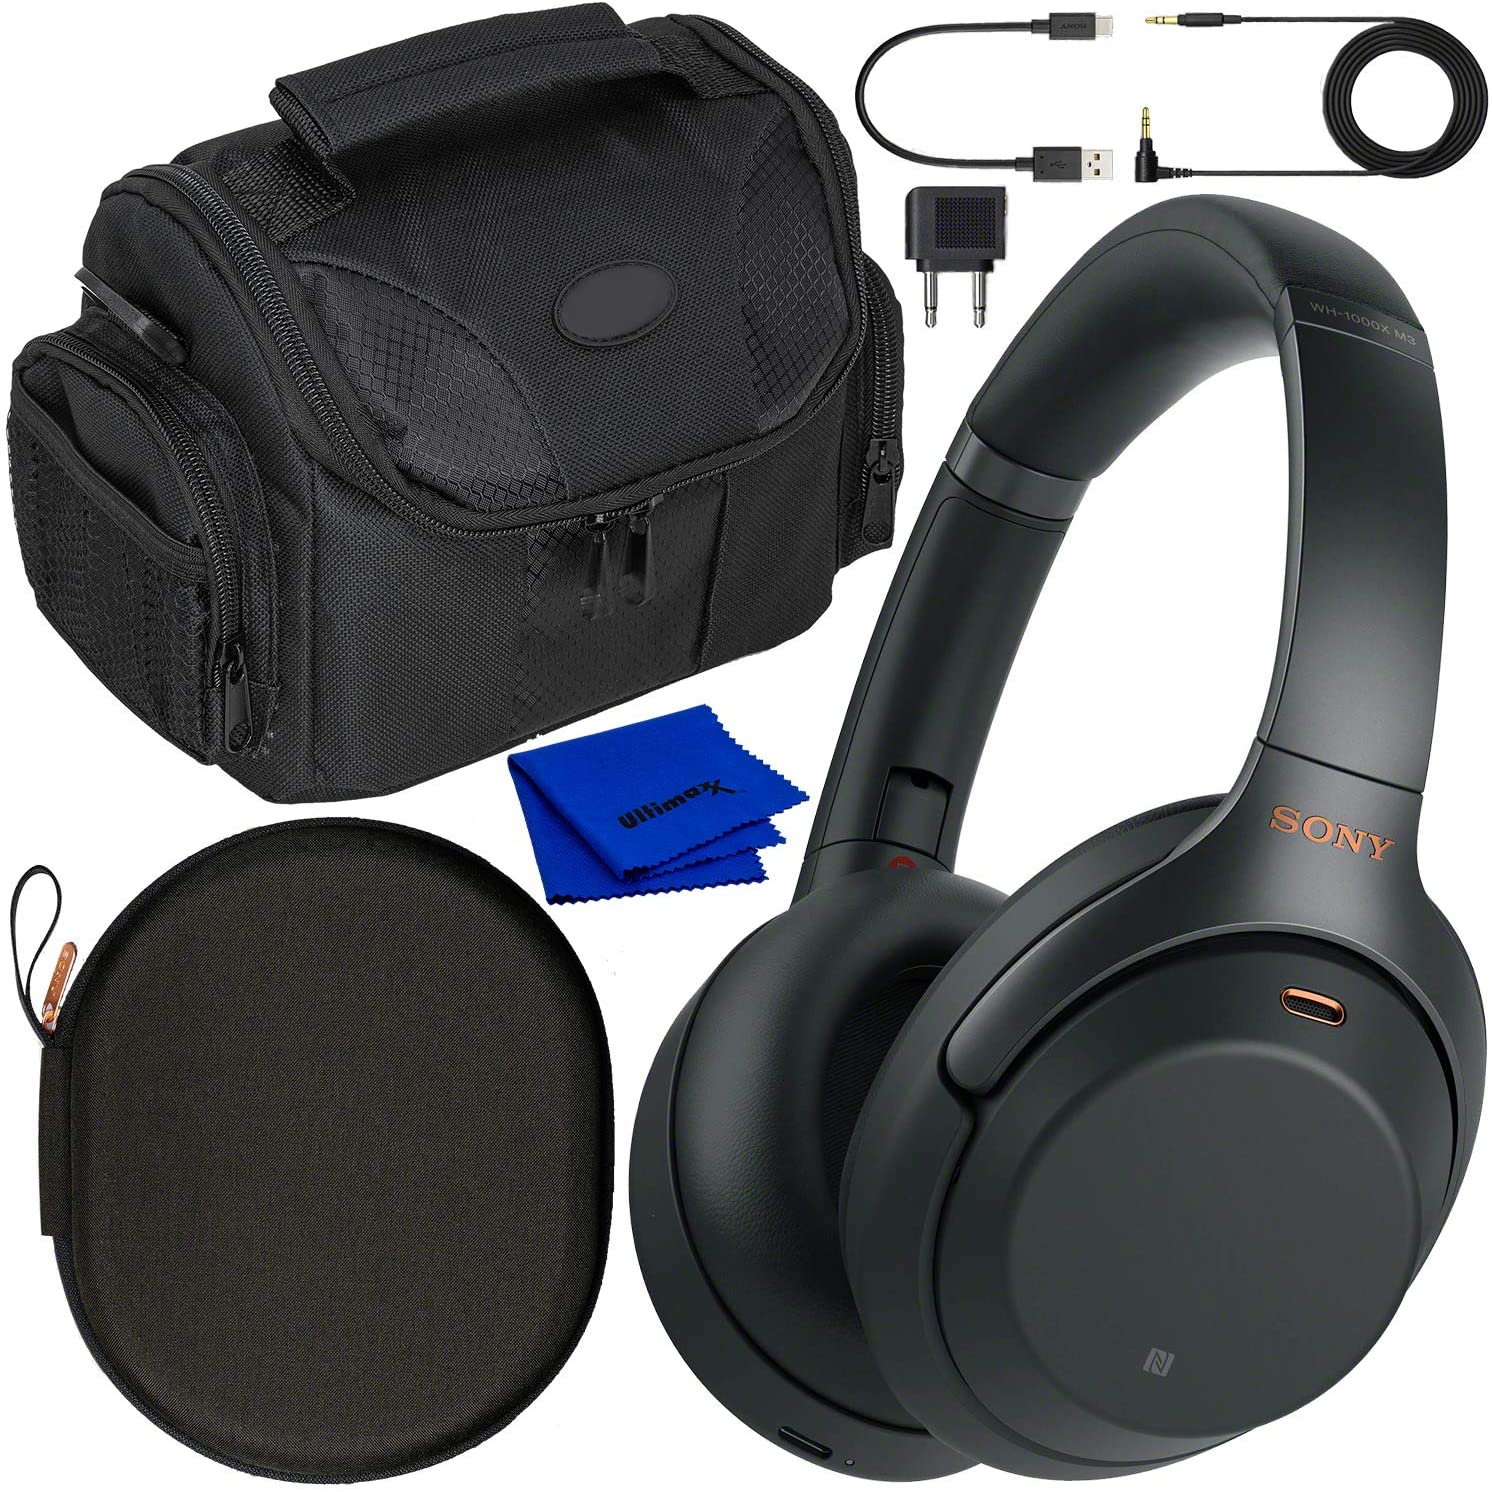 Sony Noise Cancelling Wireless